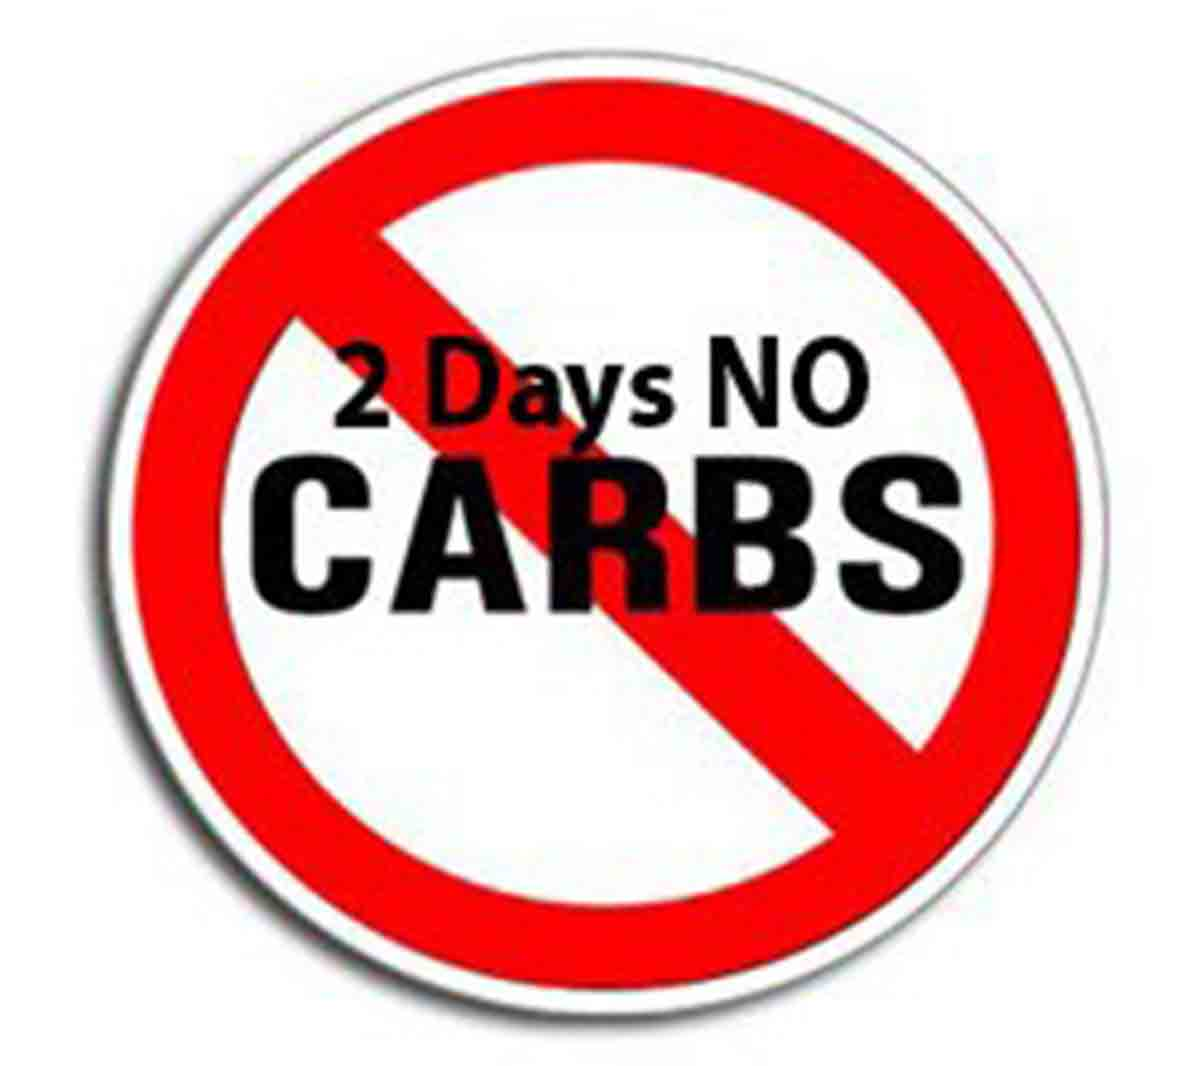 No carbs for 2 days!